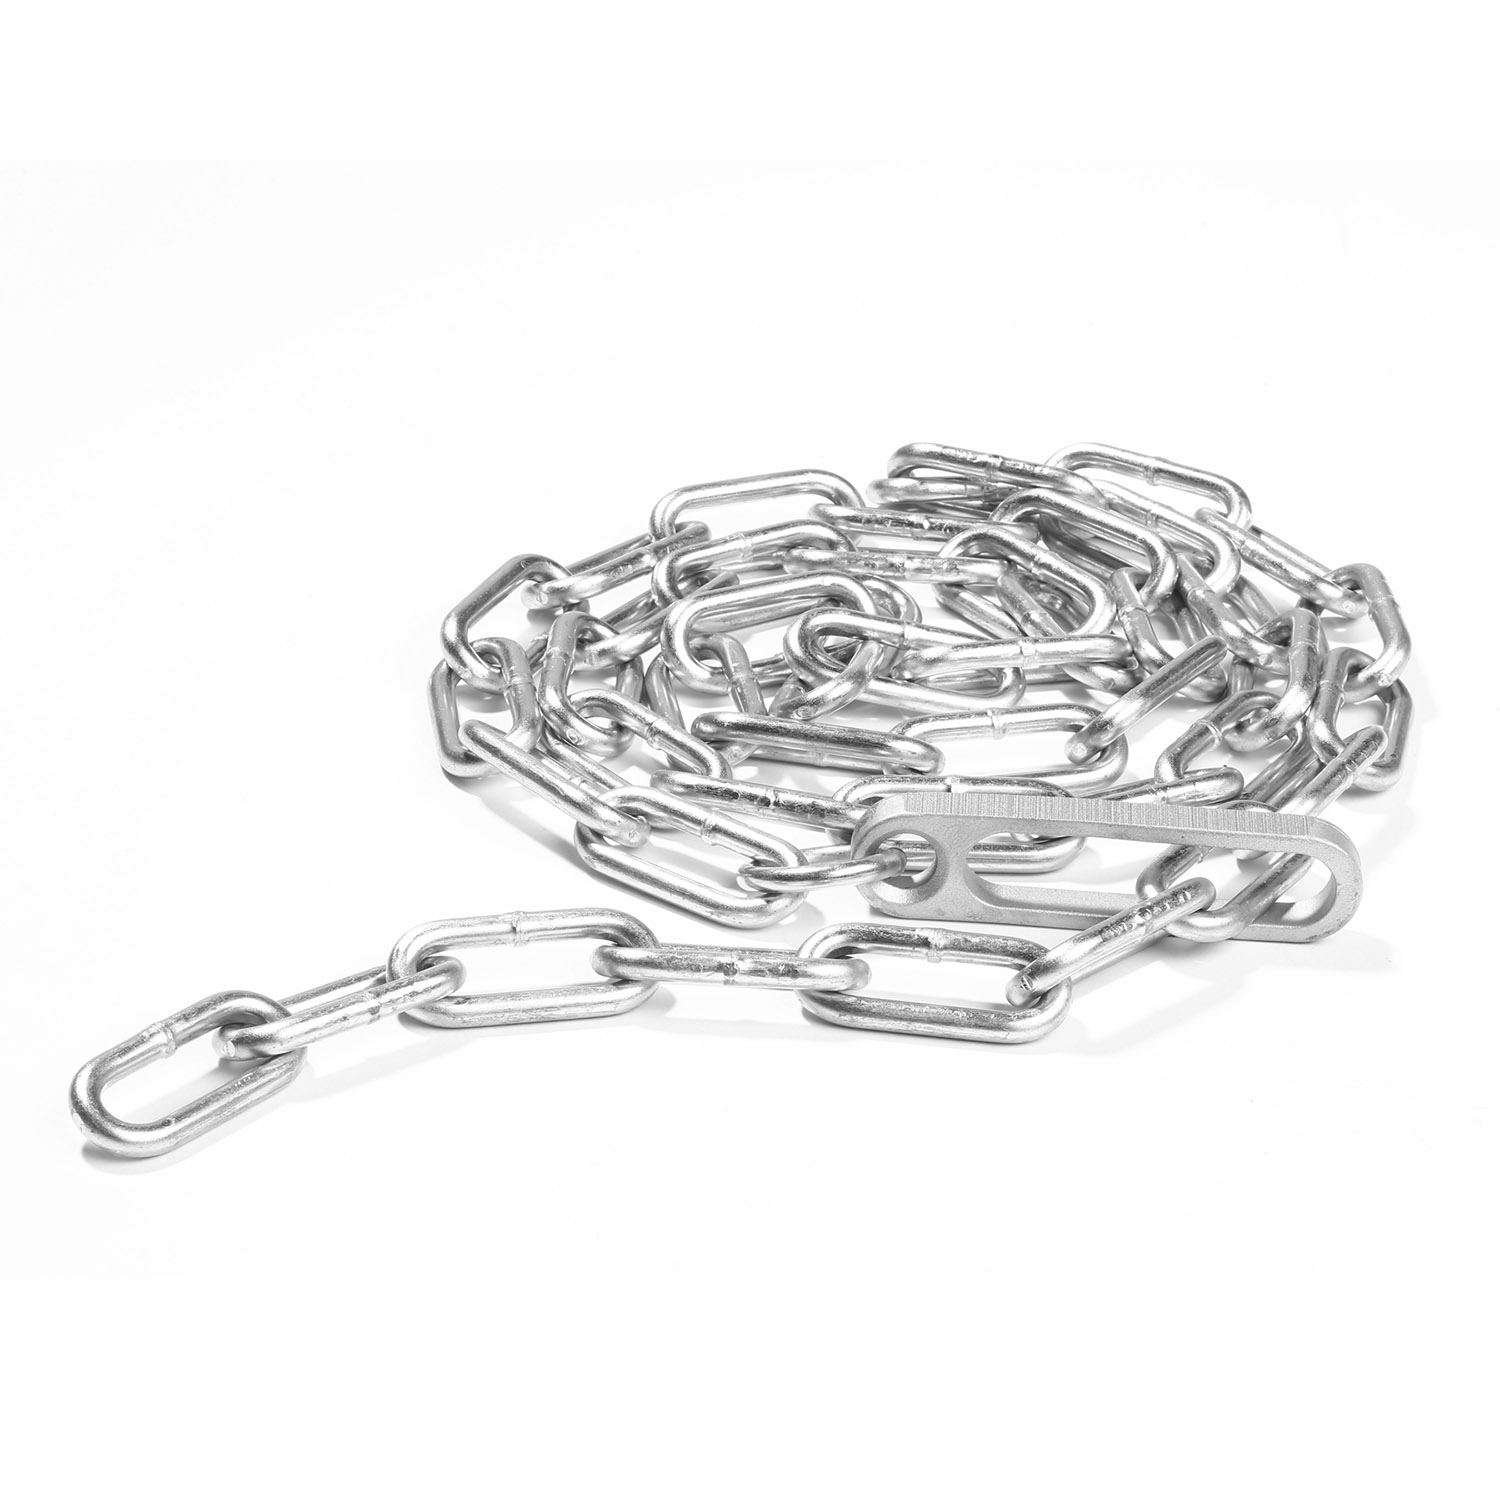 Smith Amp Wesson Model Restraint Chain